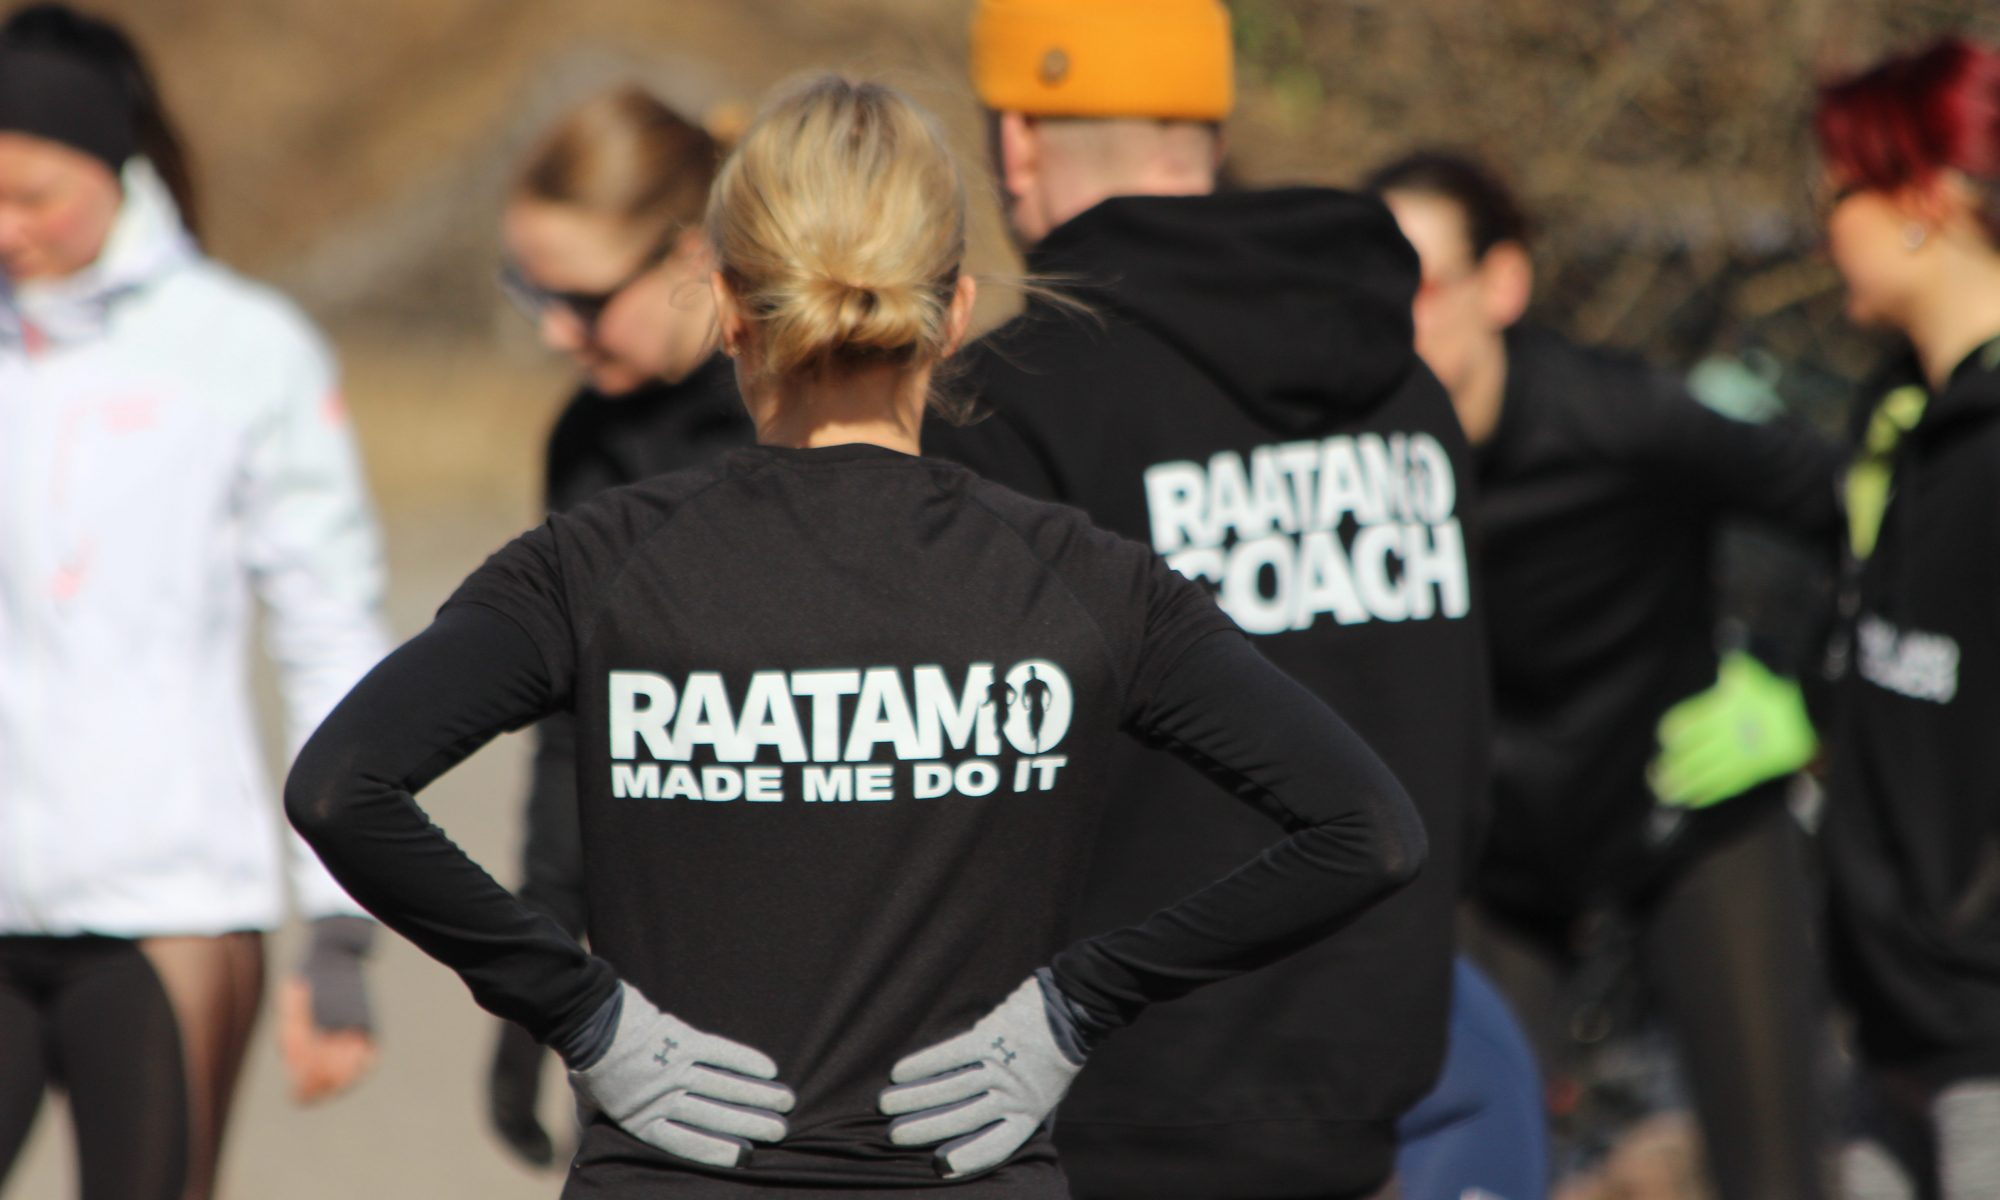 Raatamo training